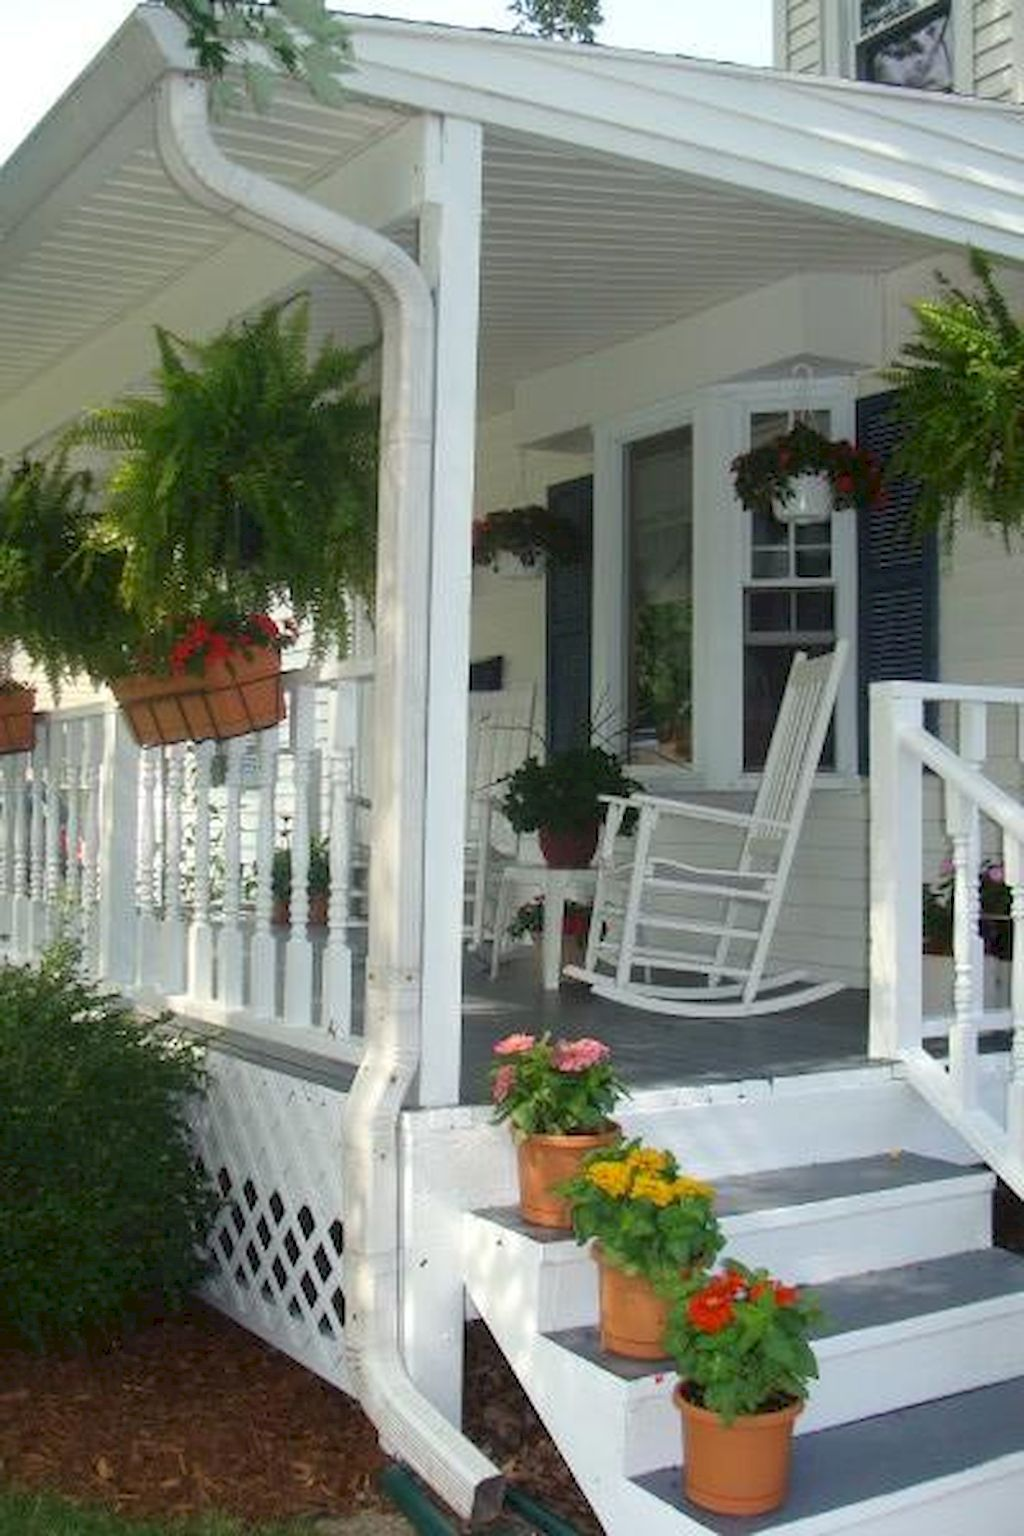 Adorable 65 Rustic Farmhouse Porch Decorating Ideas Decoremodel